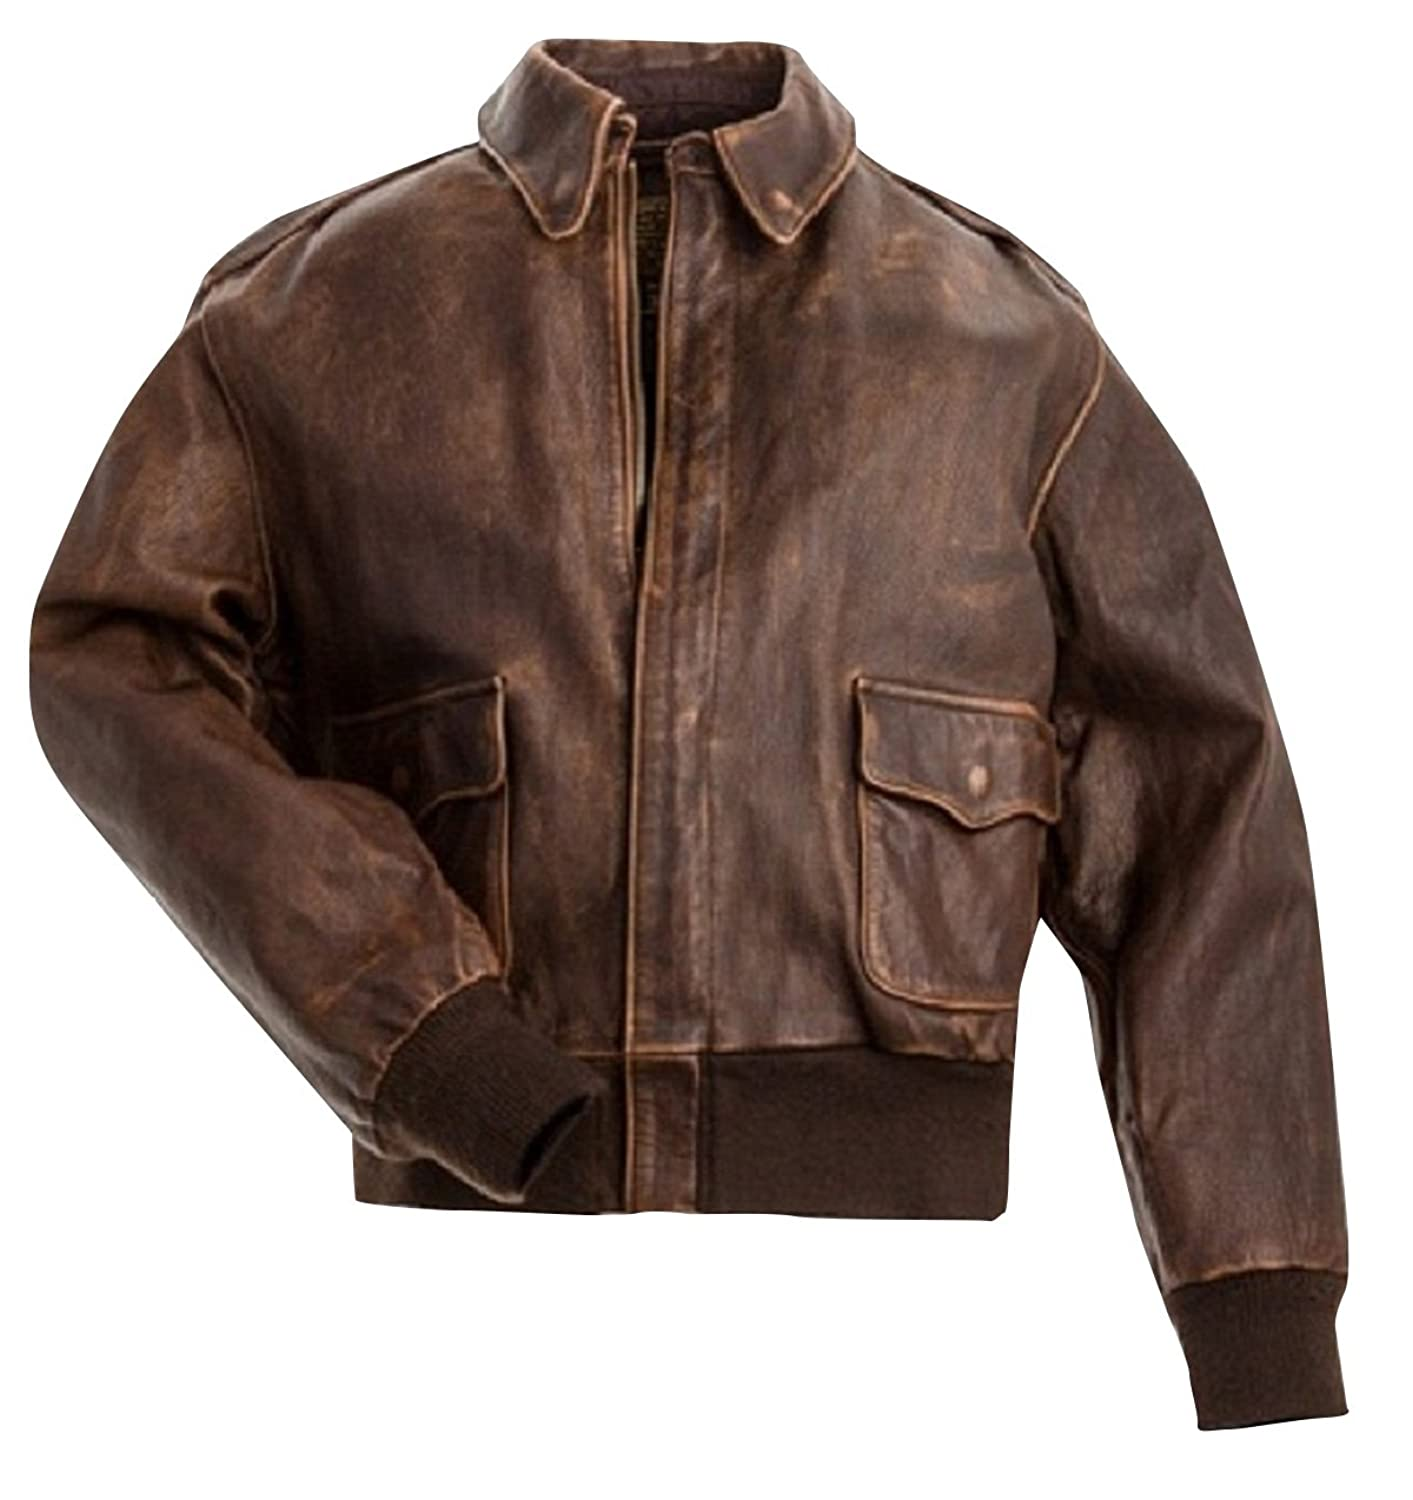 Men's Brown Vintage Distressed Leather Bomber Flight Jacket - DeluxeAdultCostumes.com